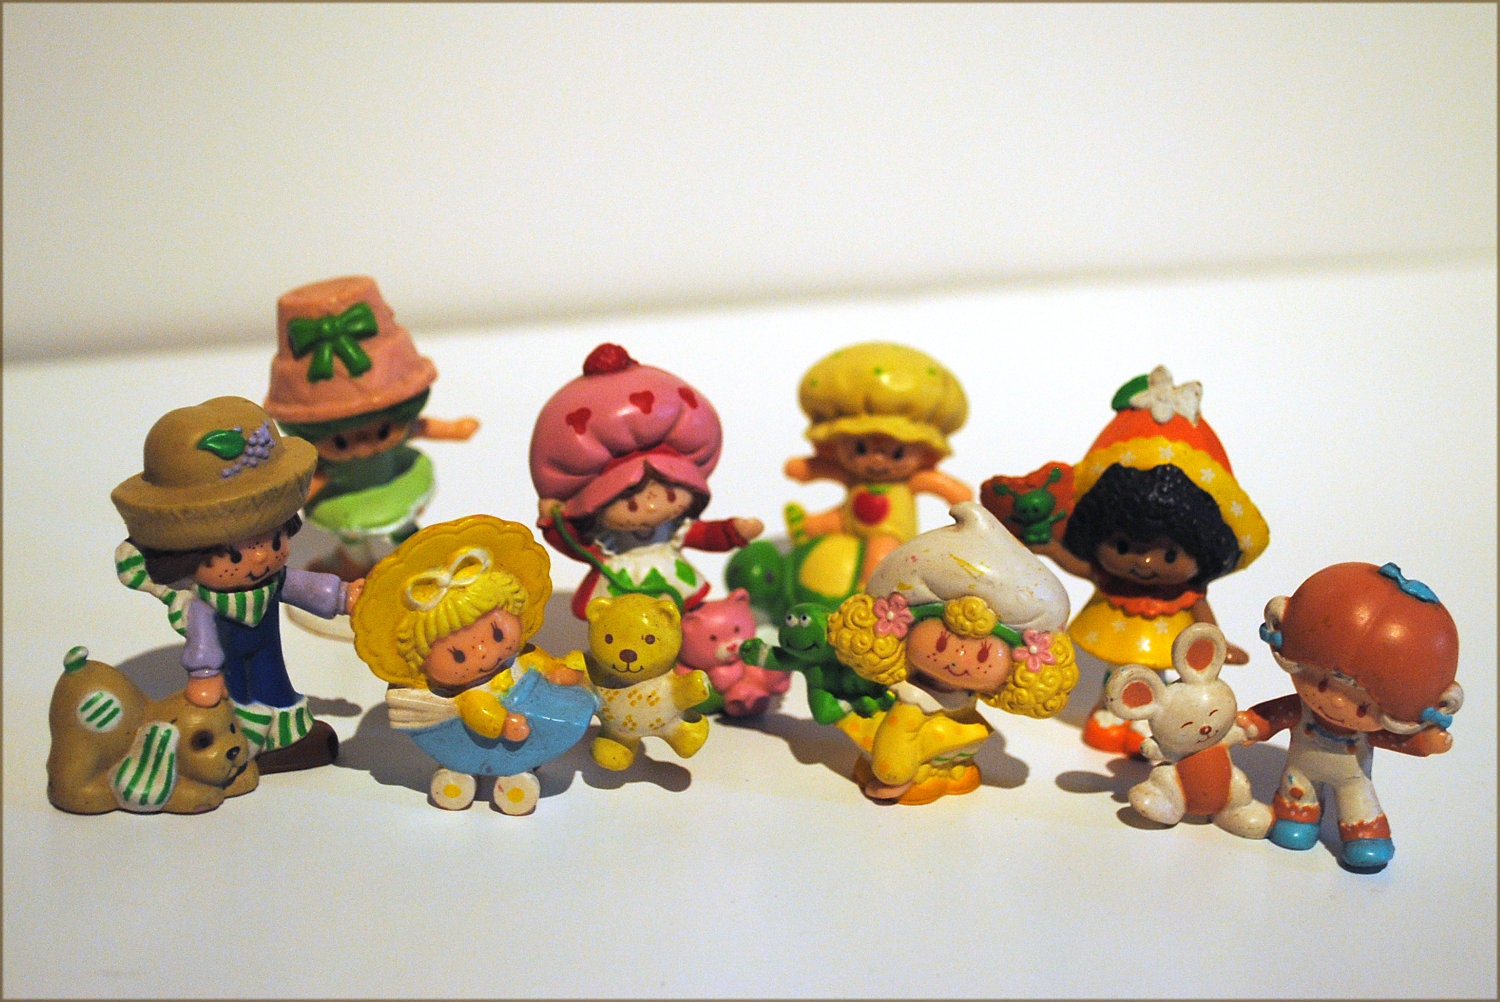 1980s Strawberry Shortcake Figurines Toys By